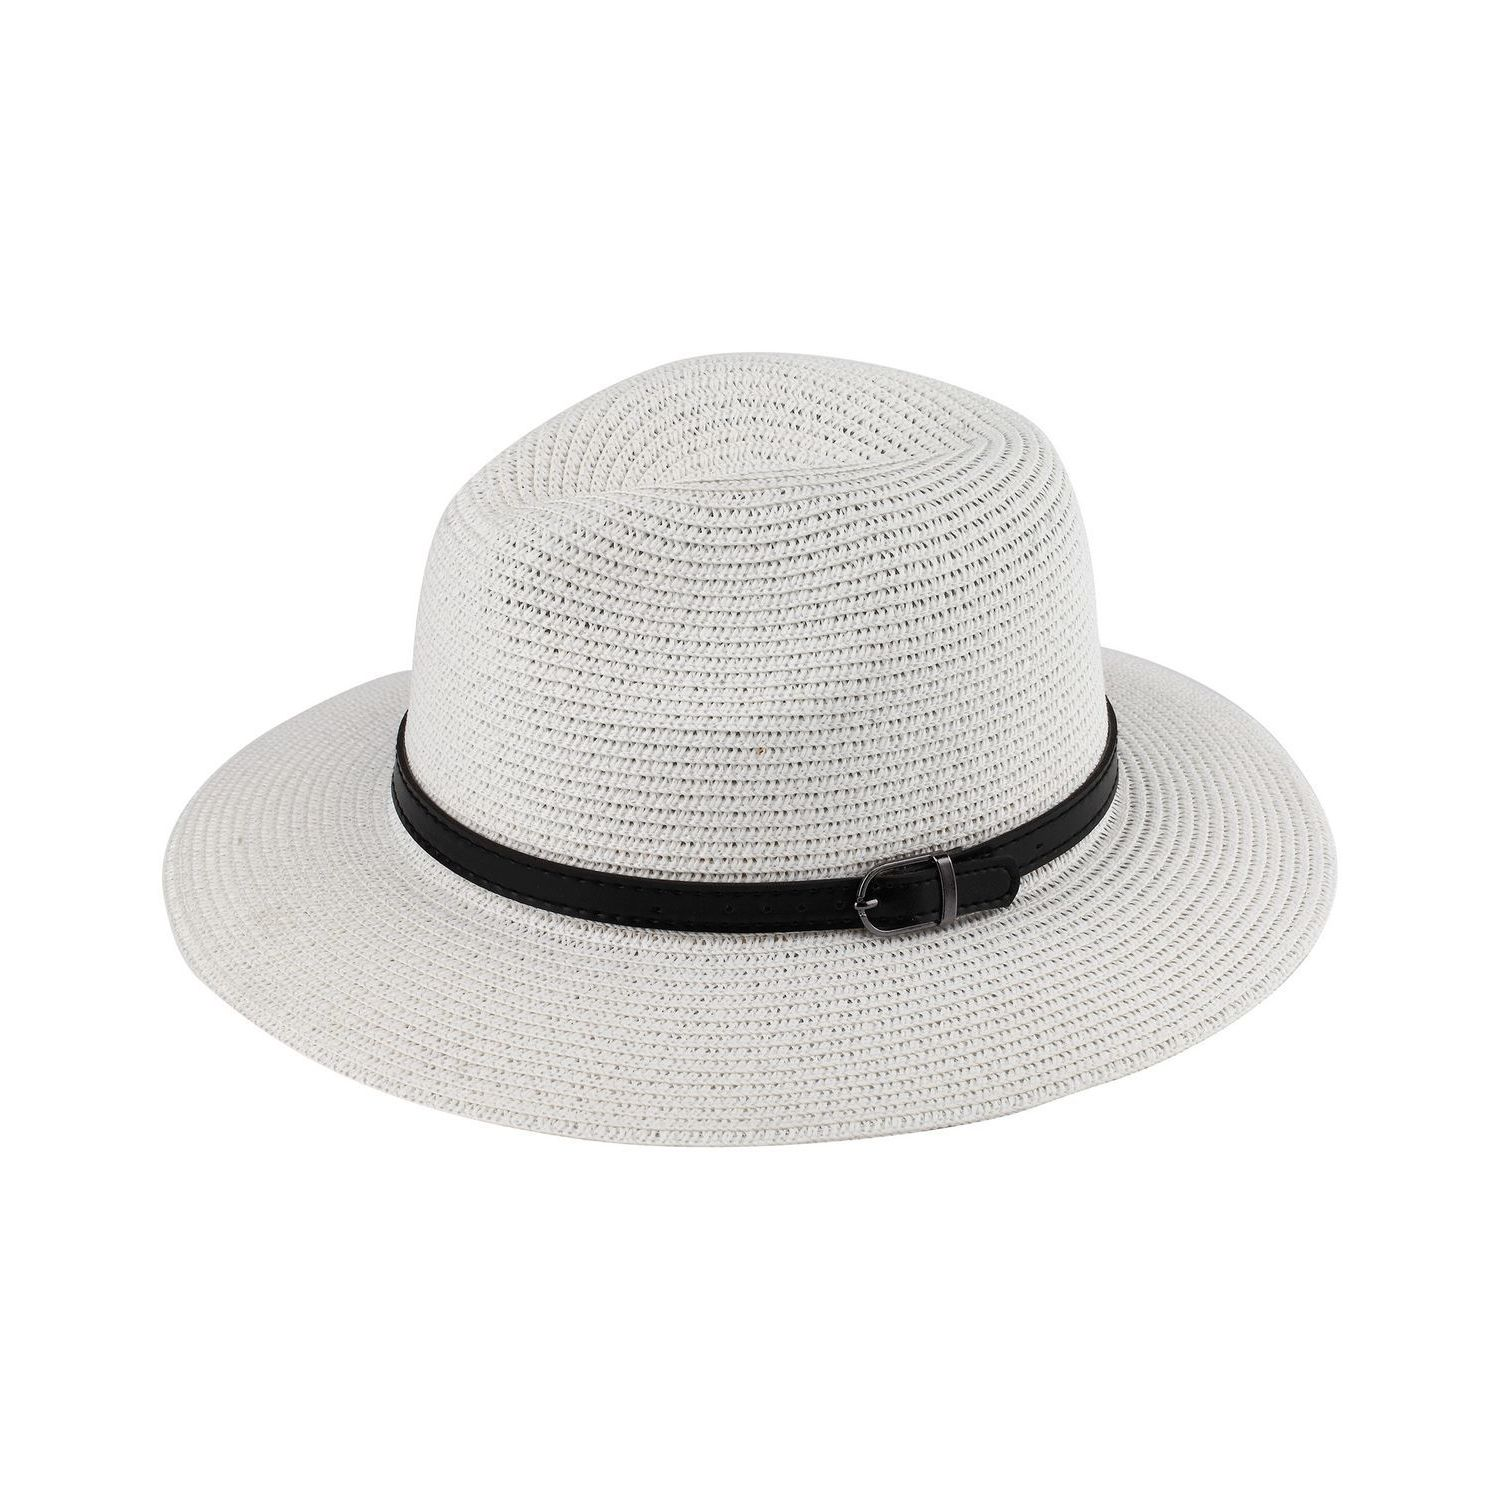 d7c8f7182be Zodaca Women s Sun Styles Marla Ladies Fedora Style Sun Hat Adjustable  Foldable Beach Hat (12 Colors Available)